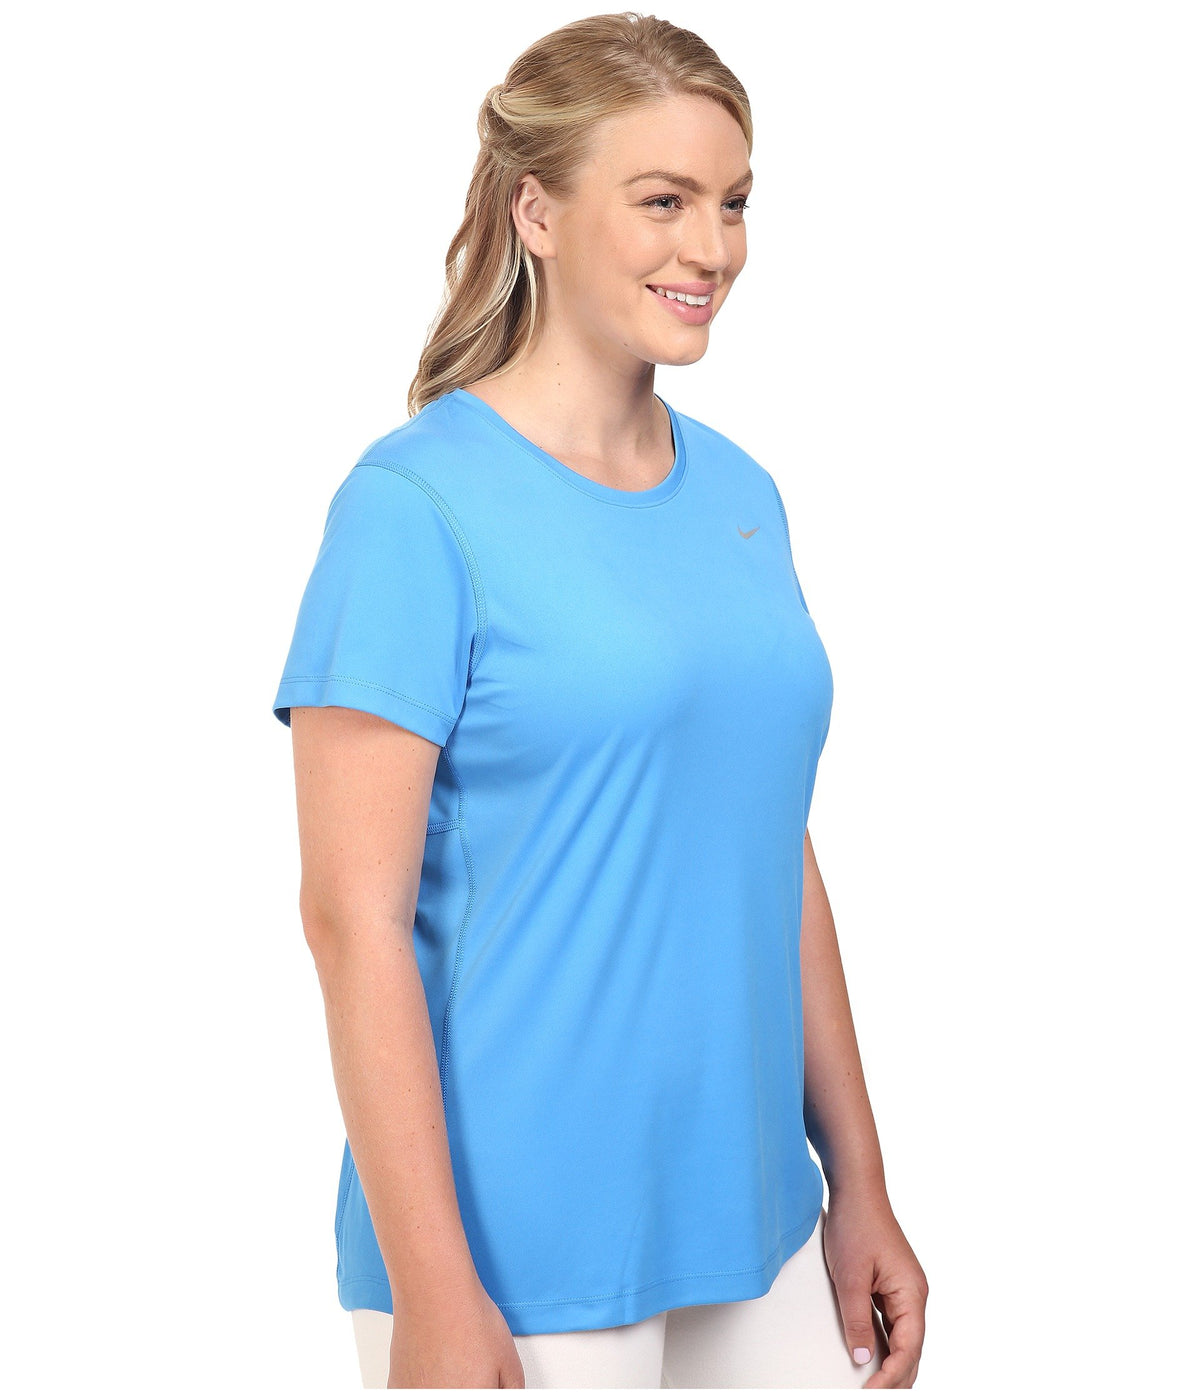 Miler Short-Sleeve Running Top (Size 1X-3X)